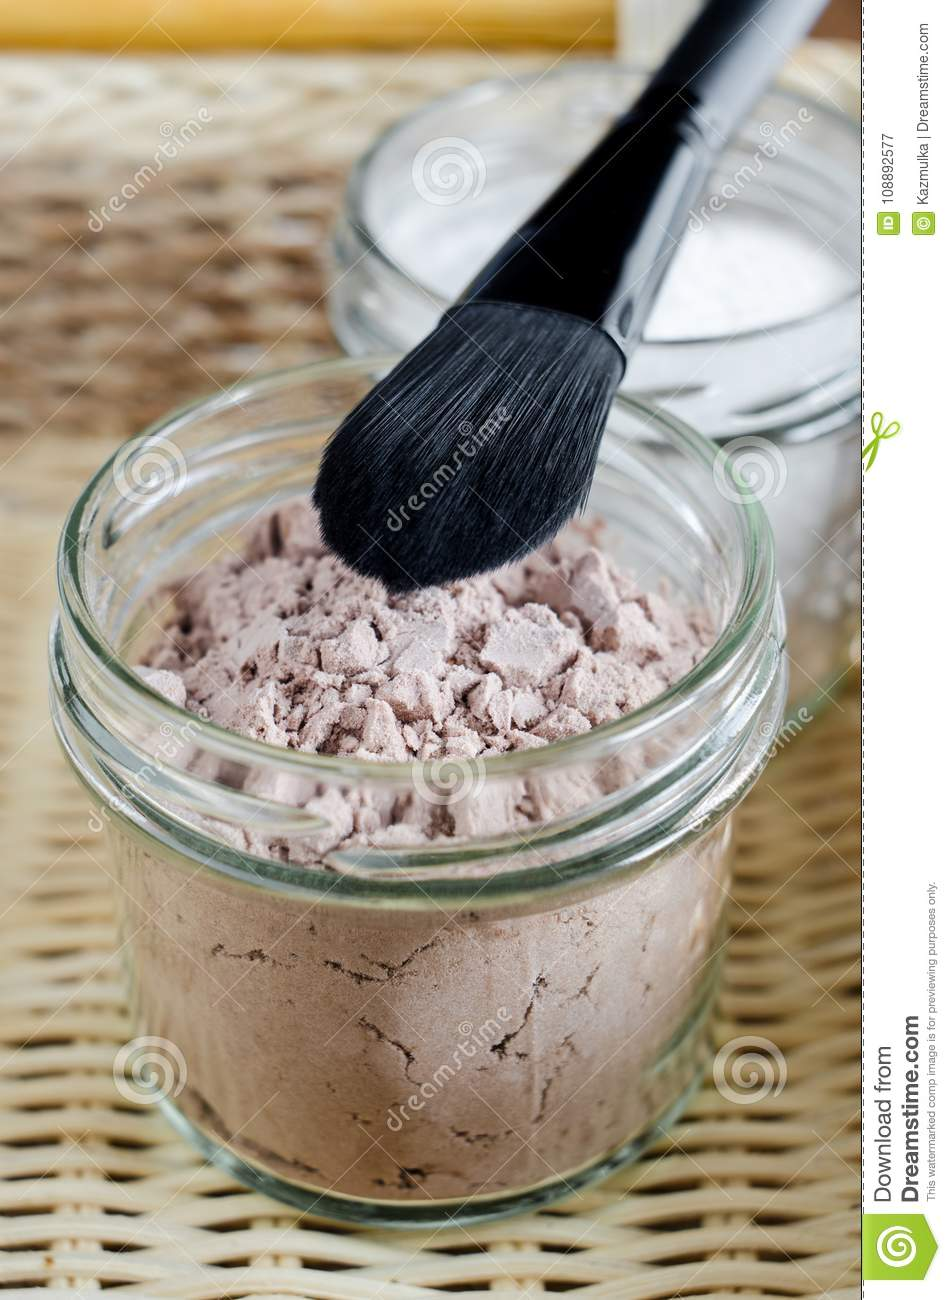 Mineral Homemade Powder Foundation Or Dry Shampoo In A Grass